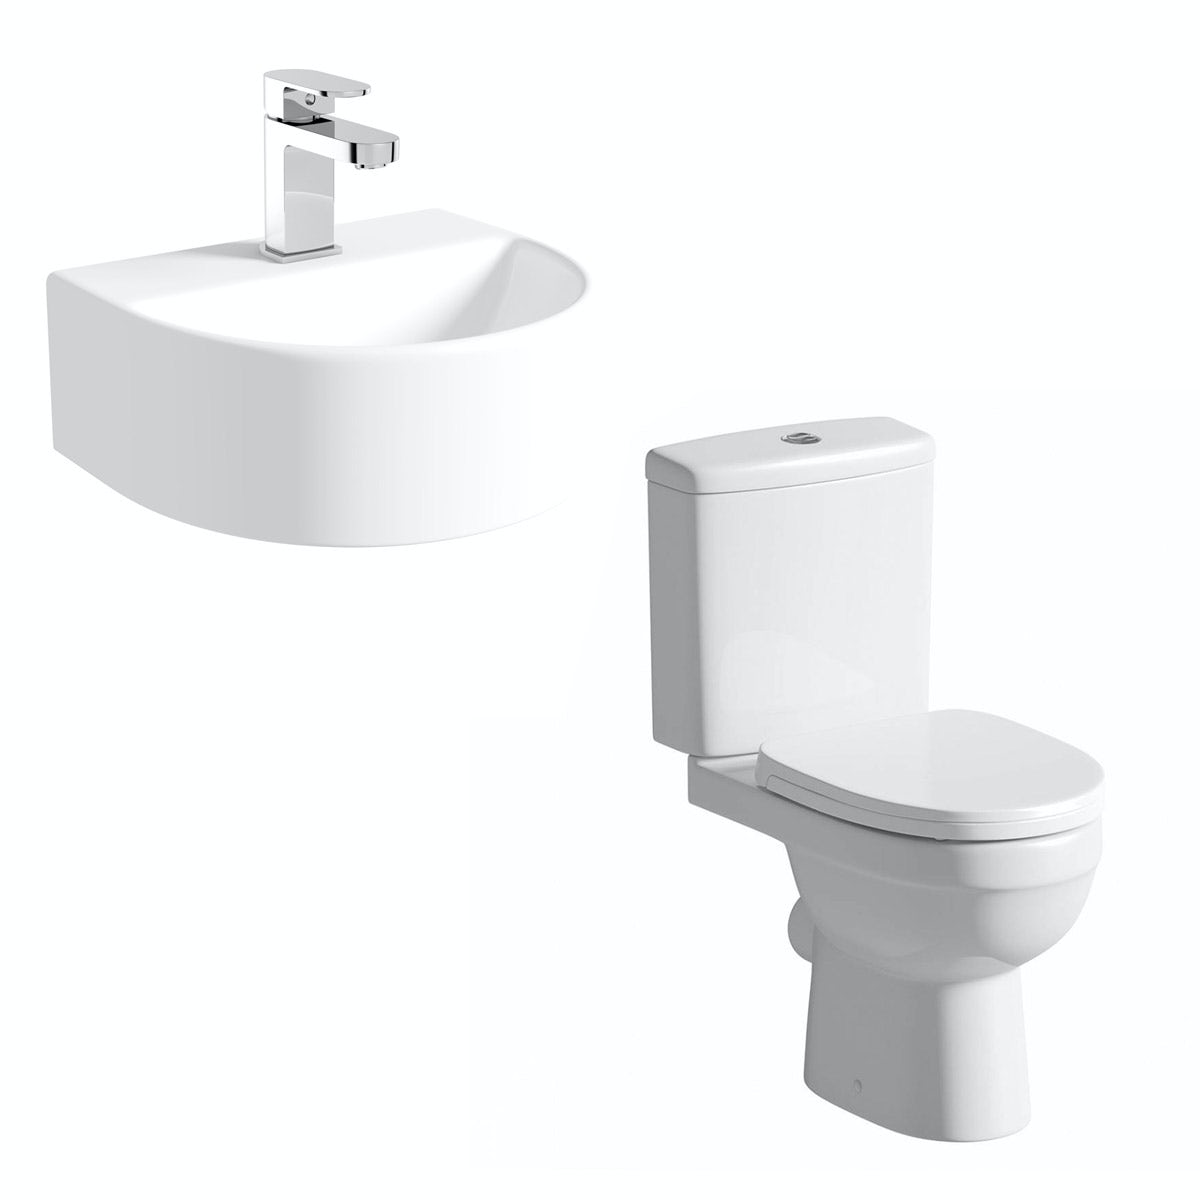 Orchard Eden cloakroom suite with contemporary wall hung basin 310mm